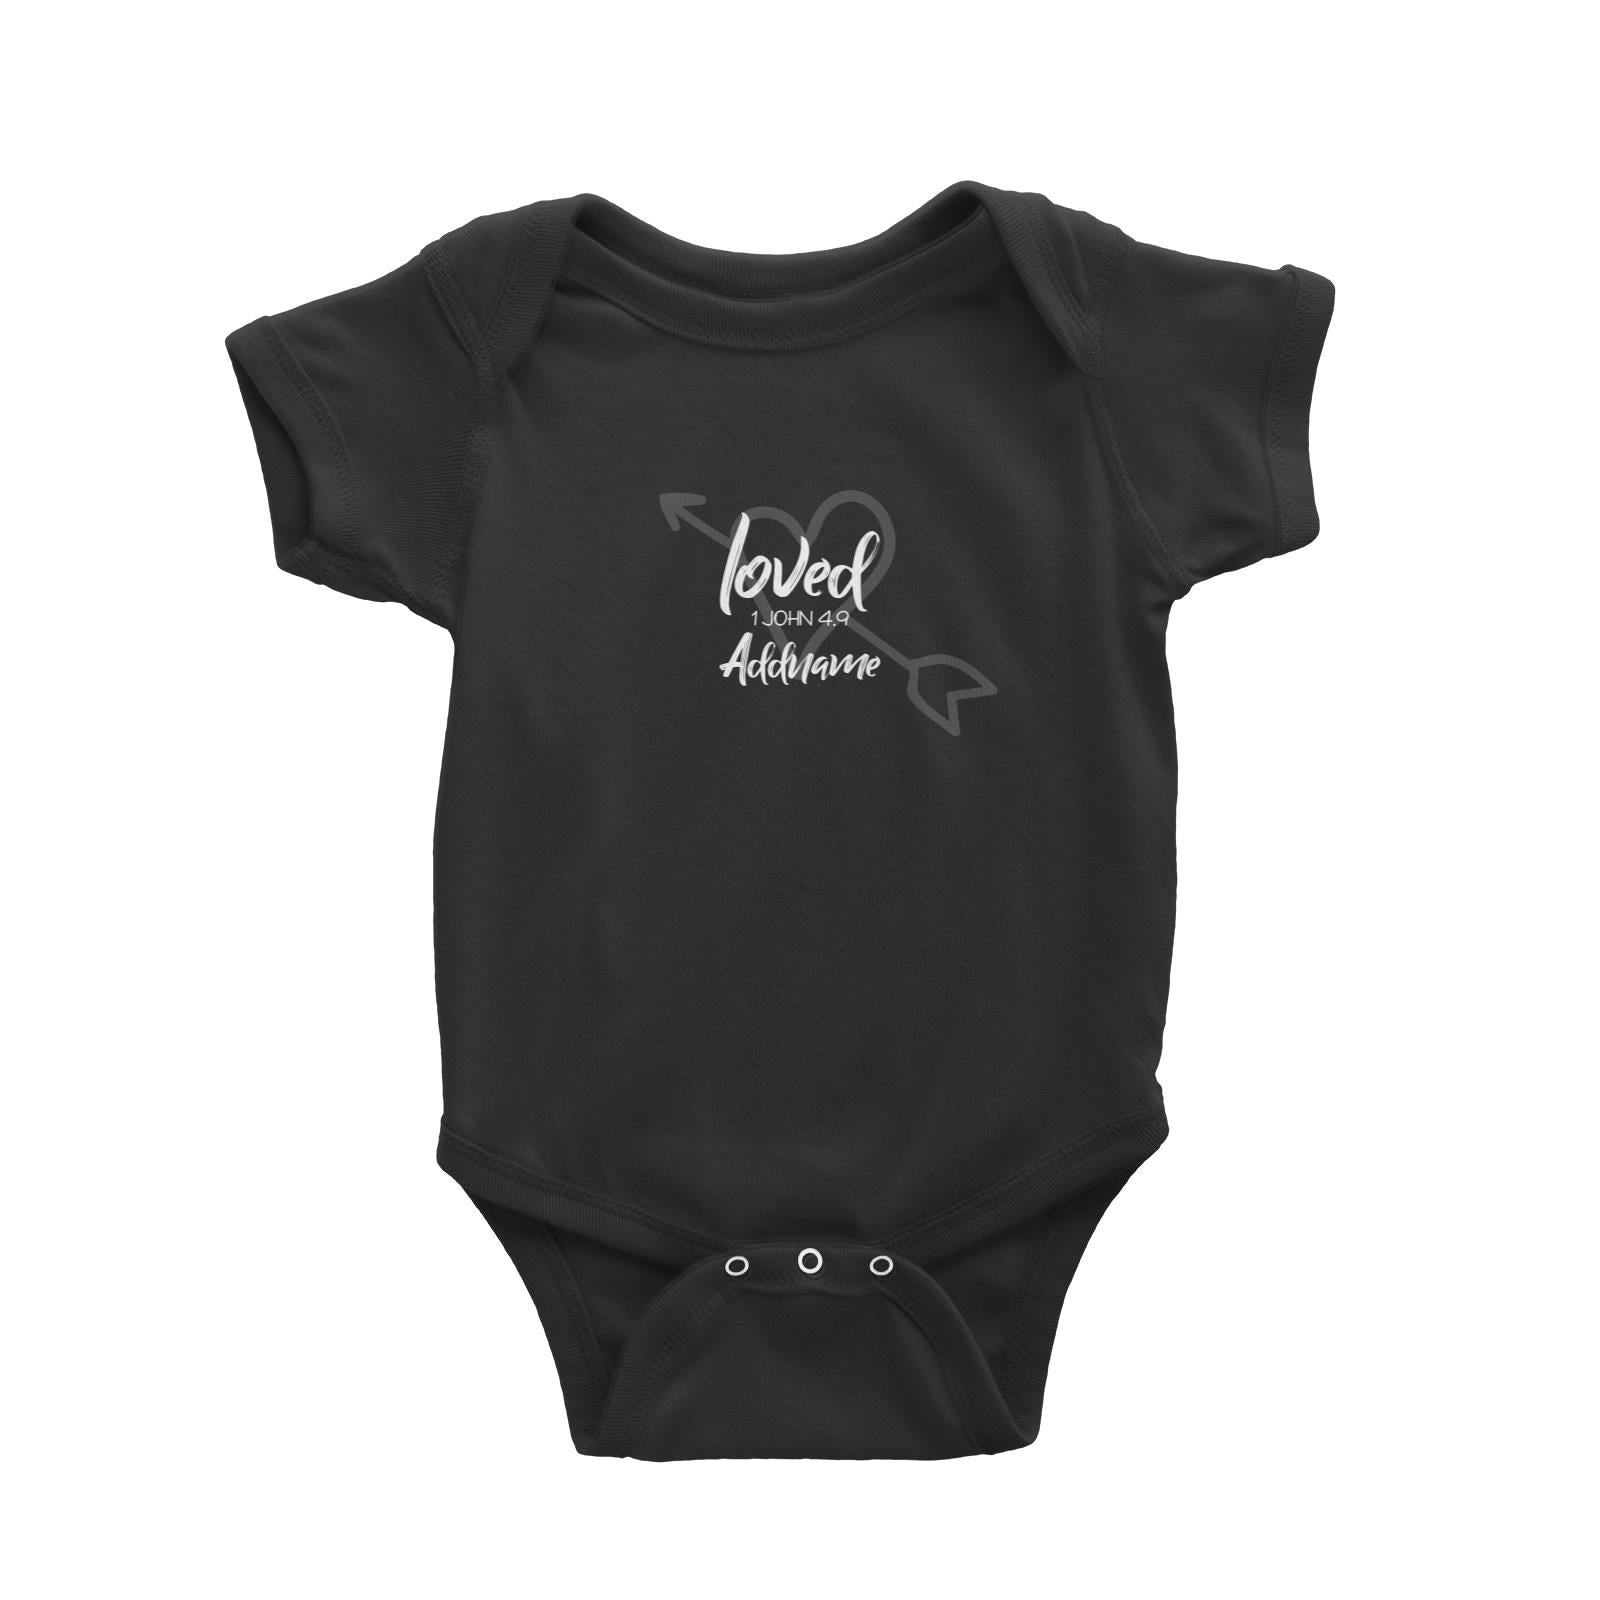 Loved Family Loved With Heart And Arrow 1 John 4.9 Addname Baby Romper